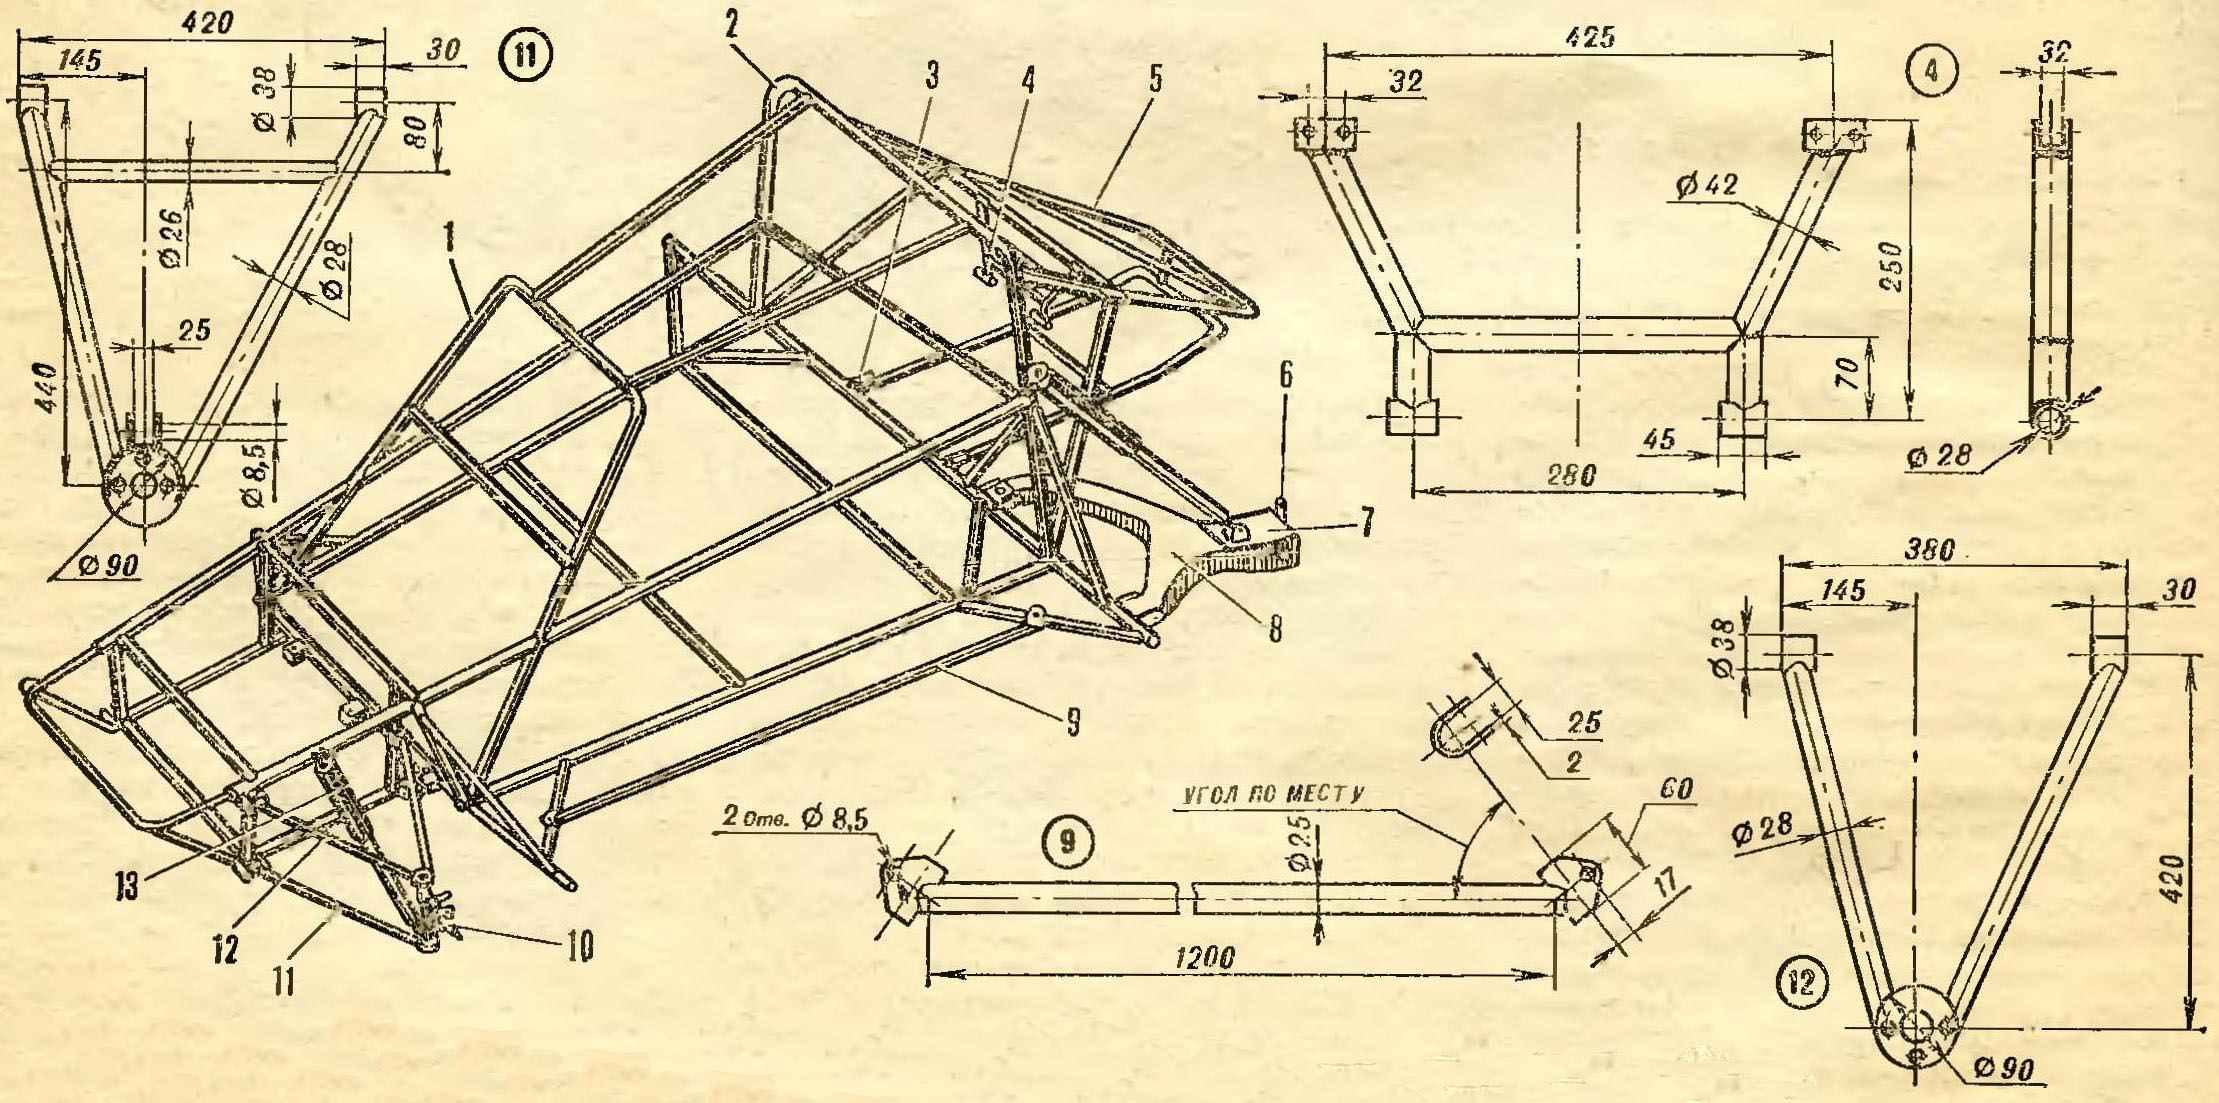 Fig. 1. The frame Assembly